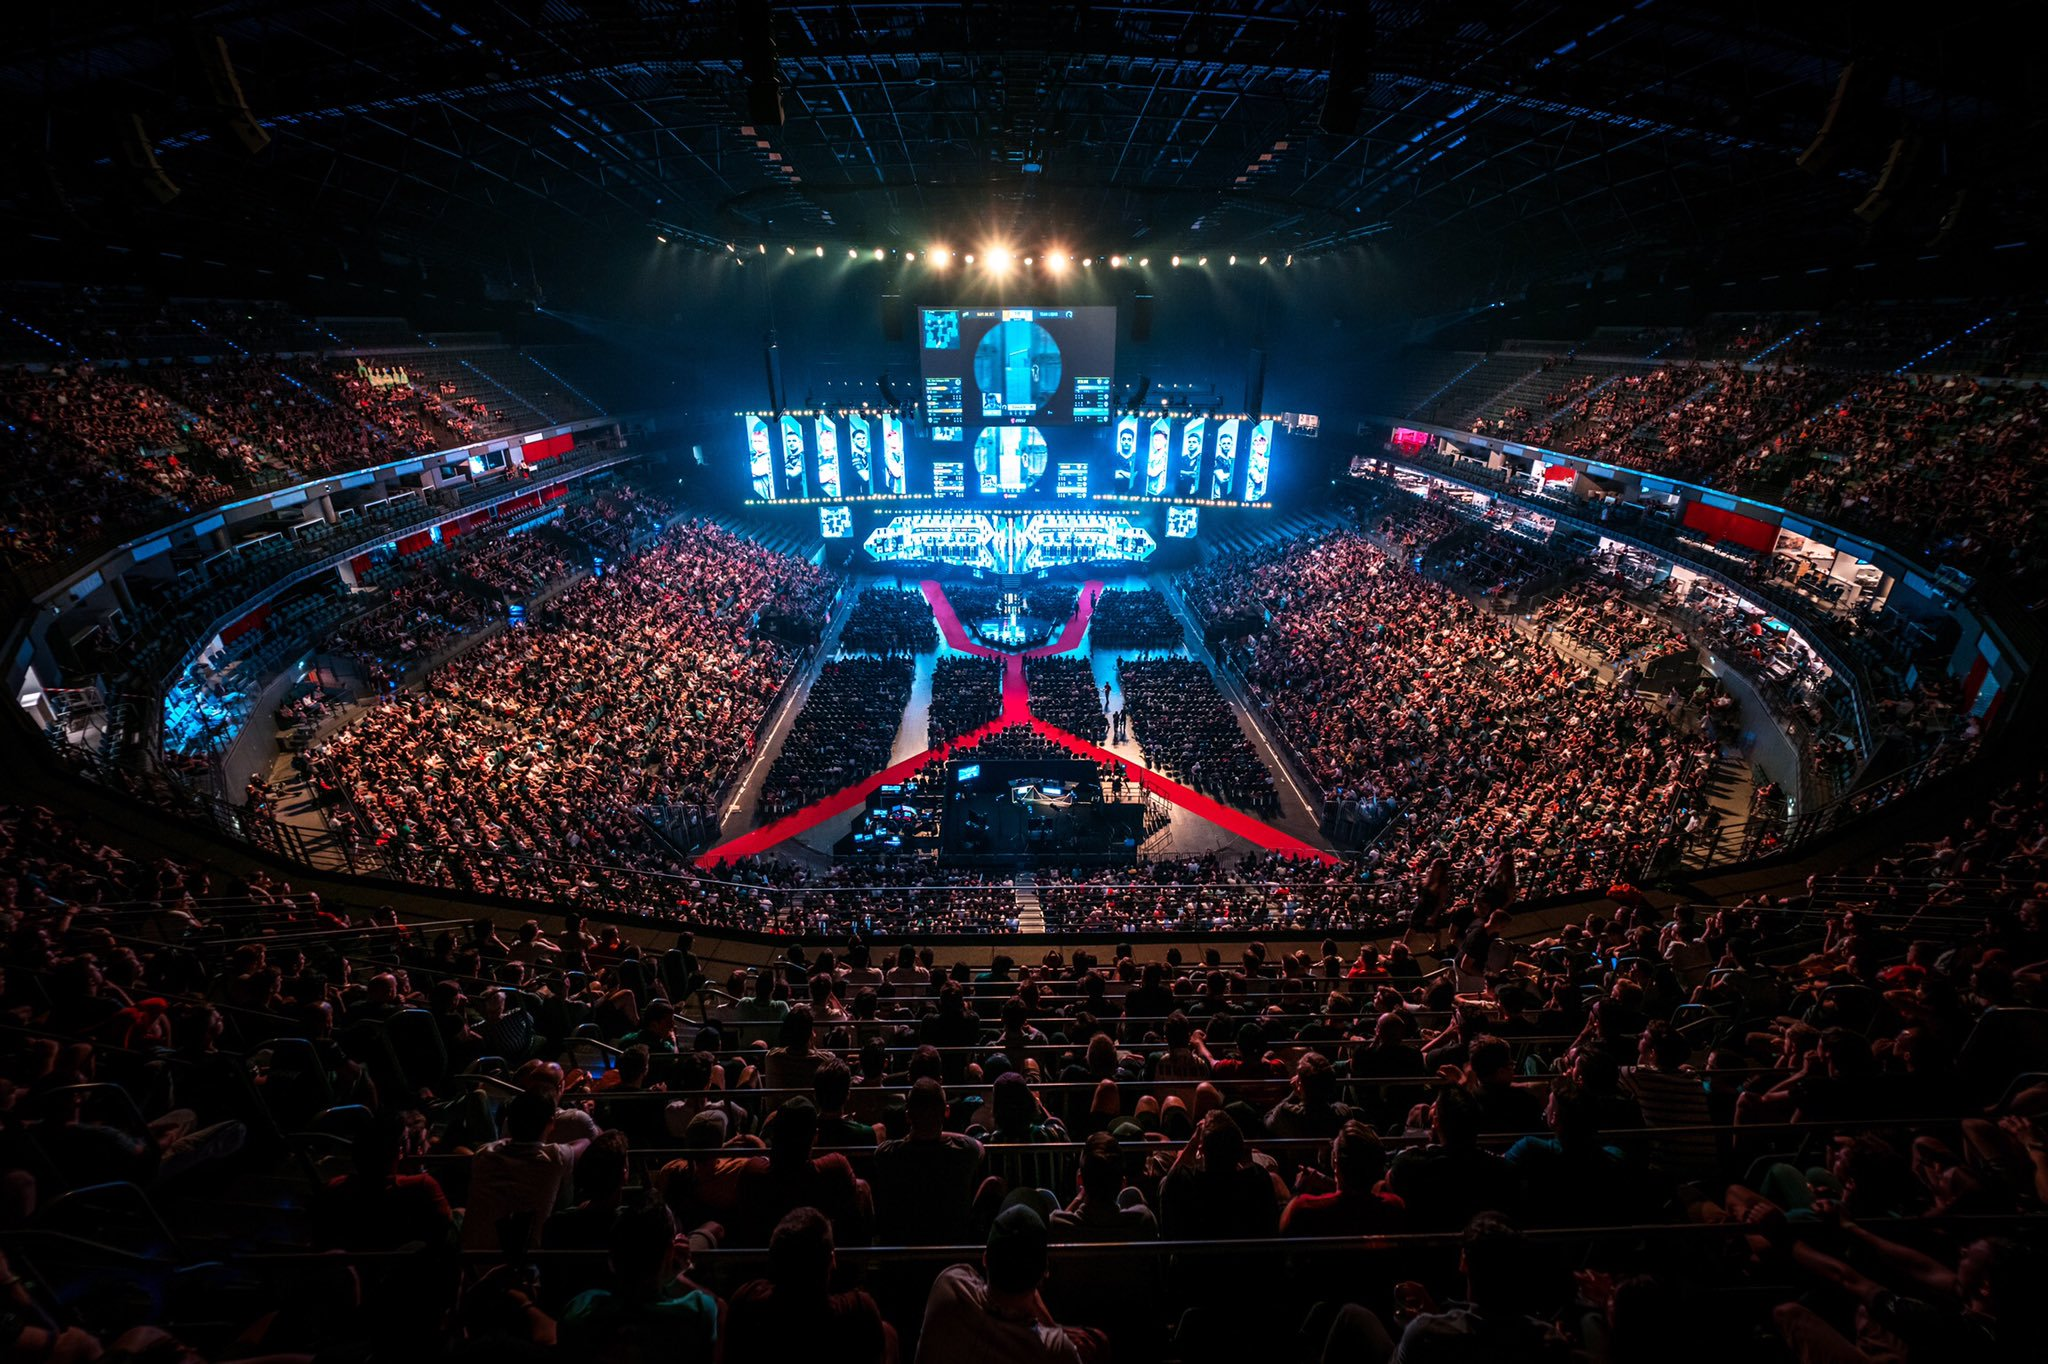 Esl One Cologne 2020